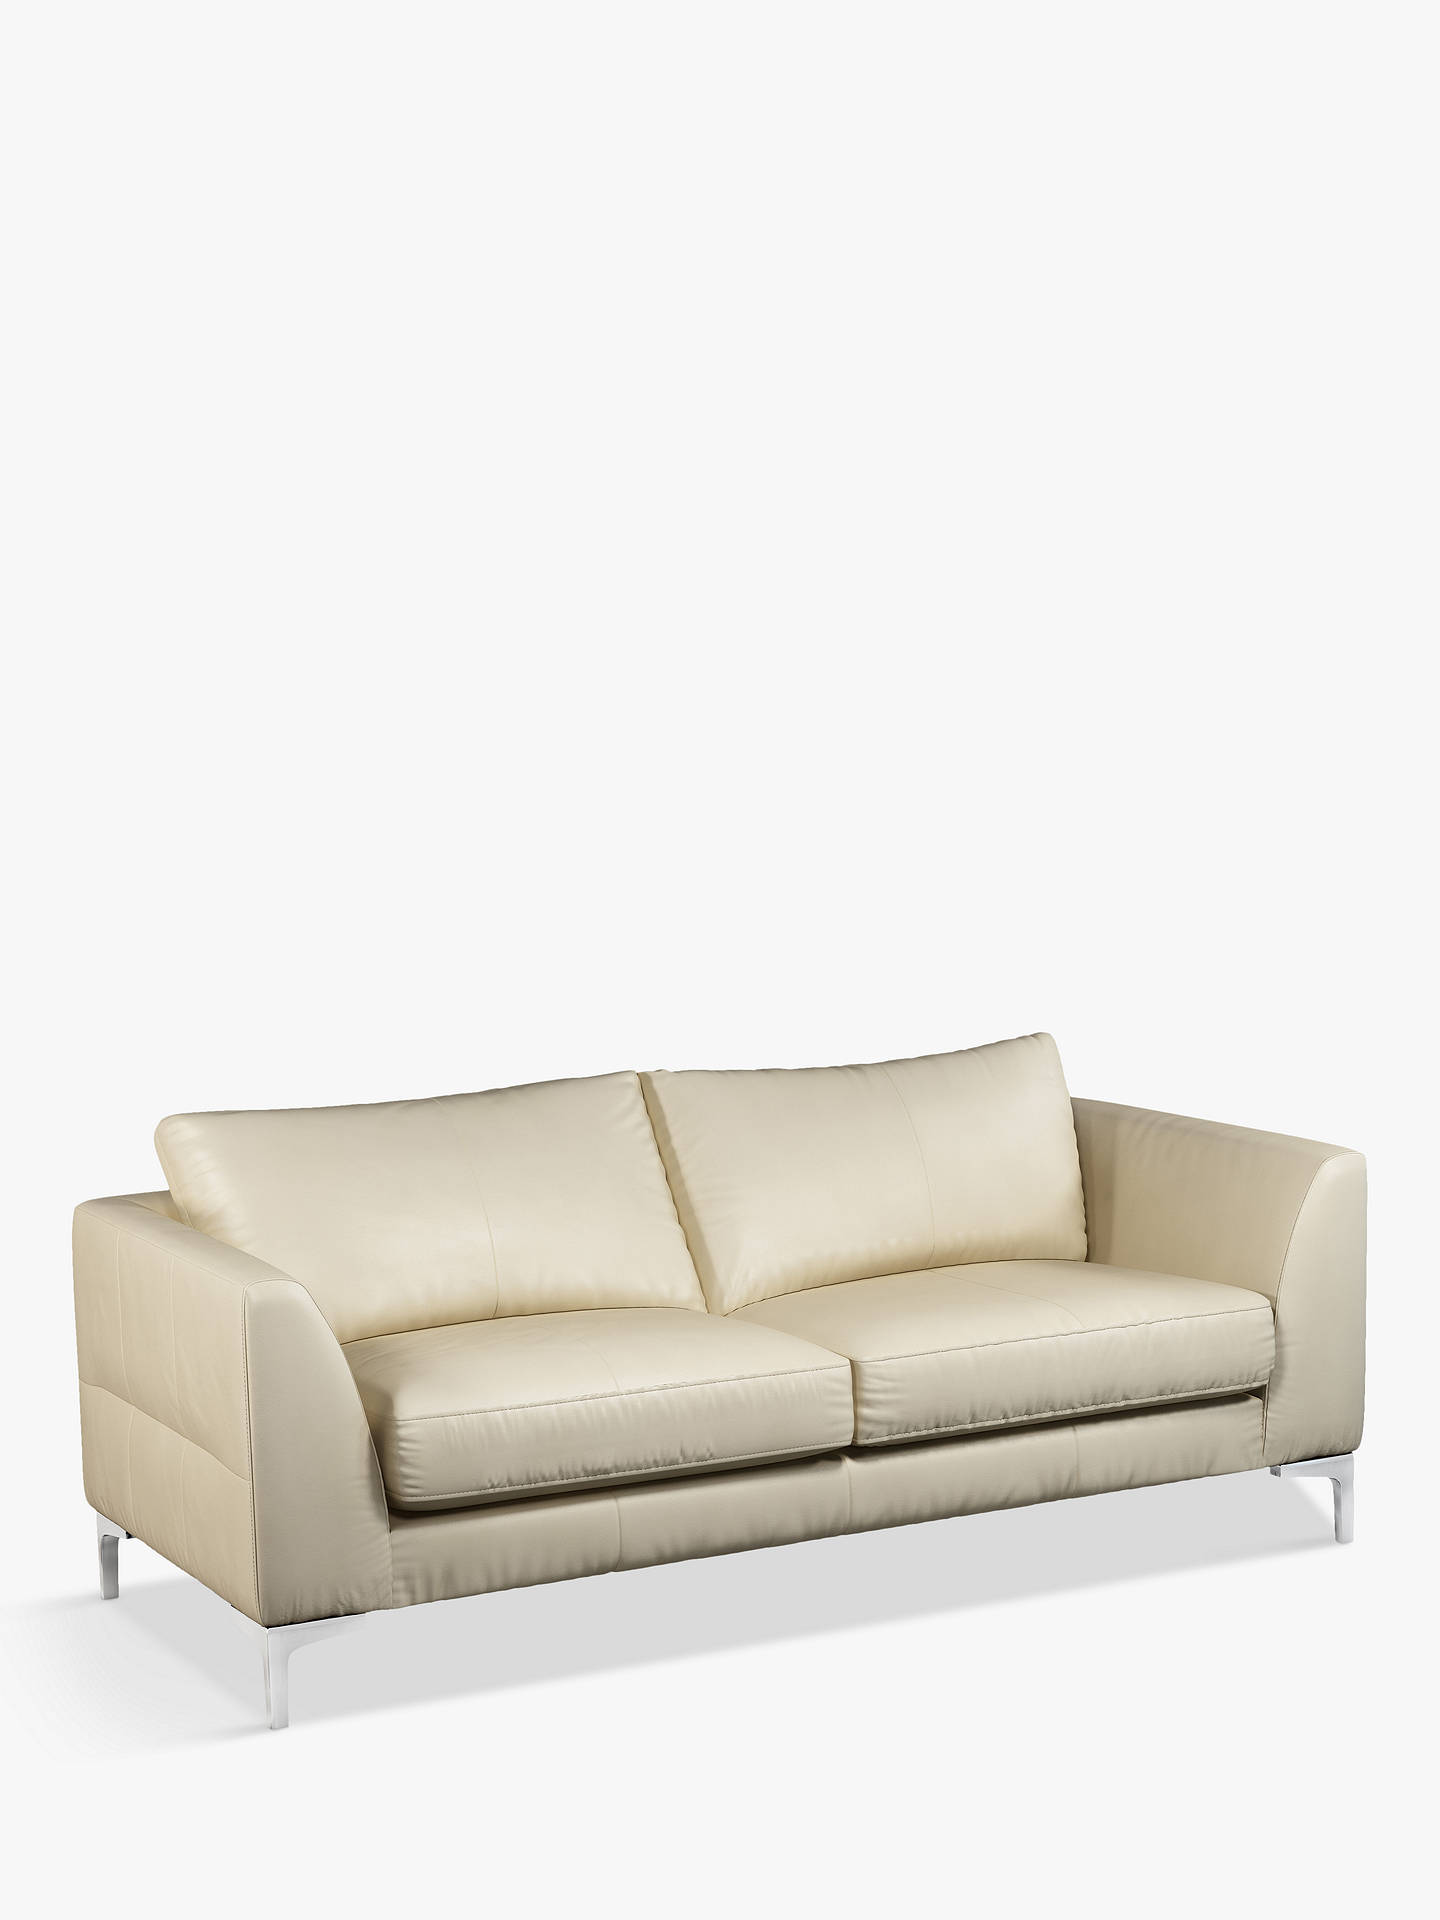 Buy John Lewis & Partners Belgrave Large 3 Seater Leather Sofa, Metal Leg, Contempo Ivory Online at johnlewis.com